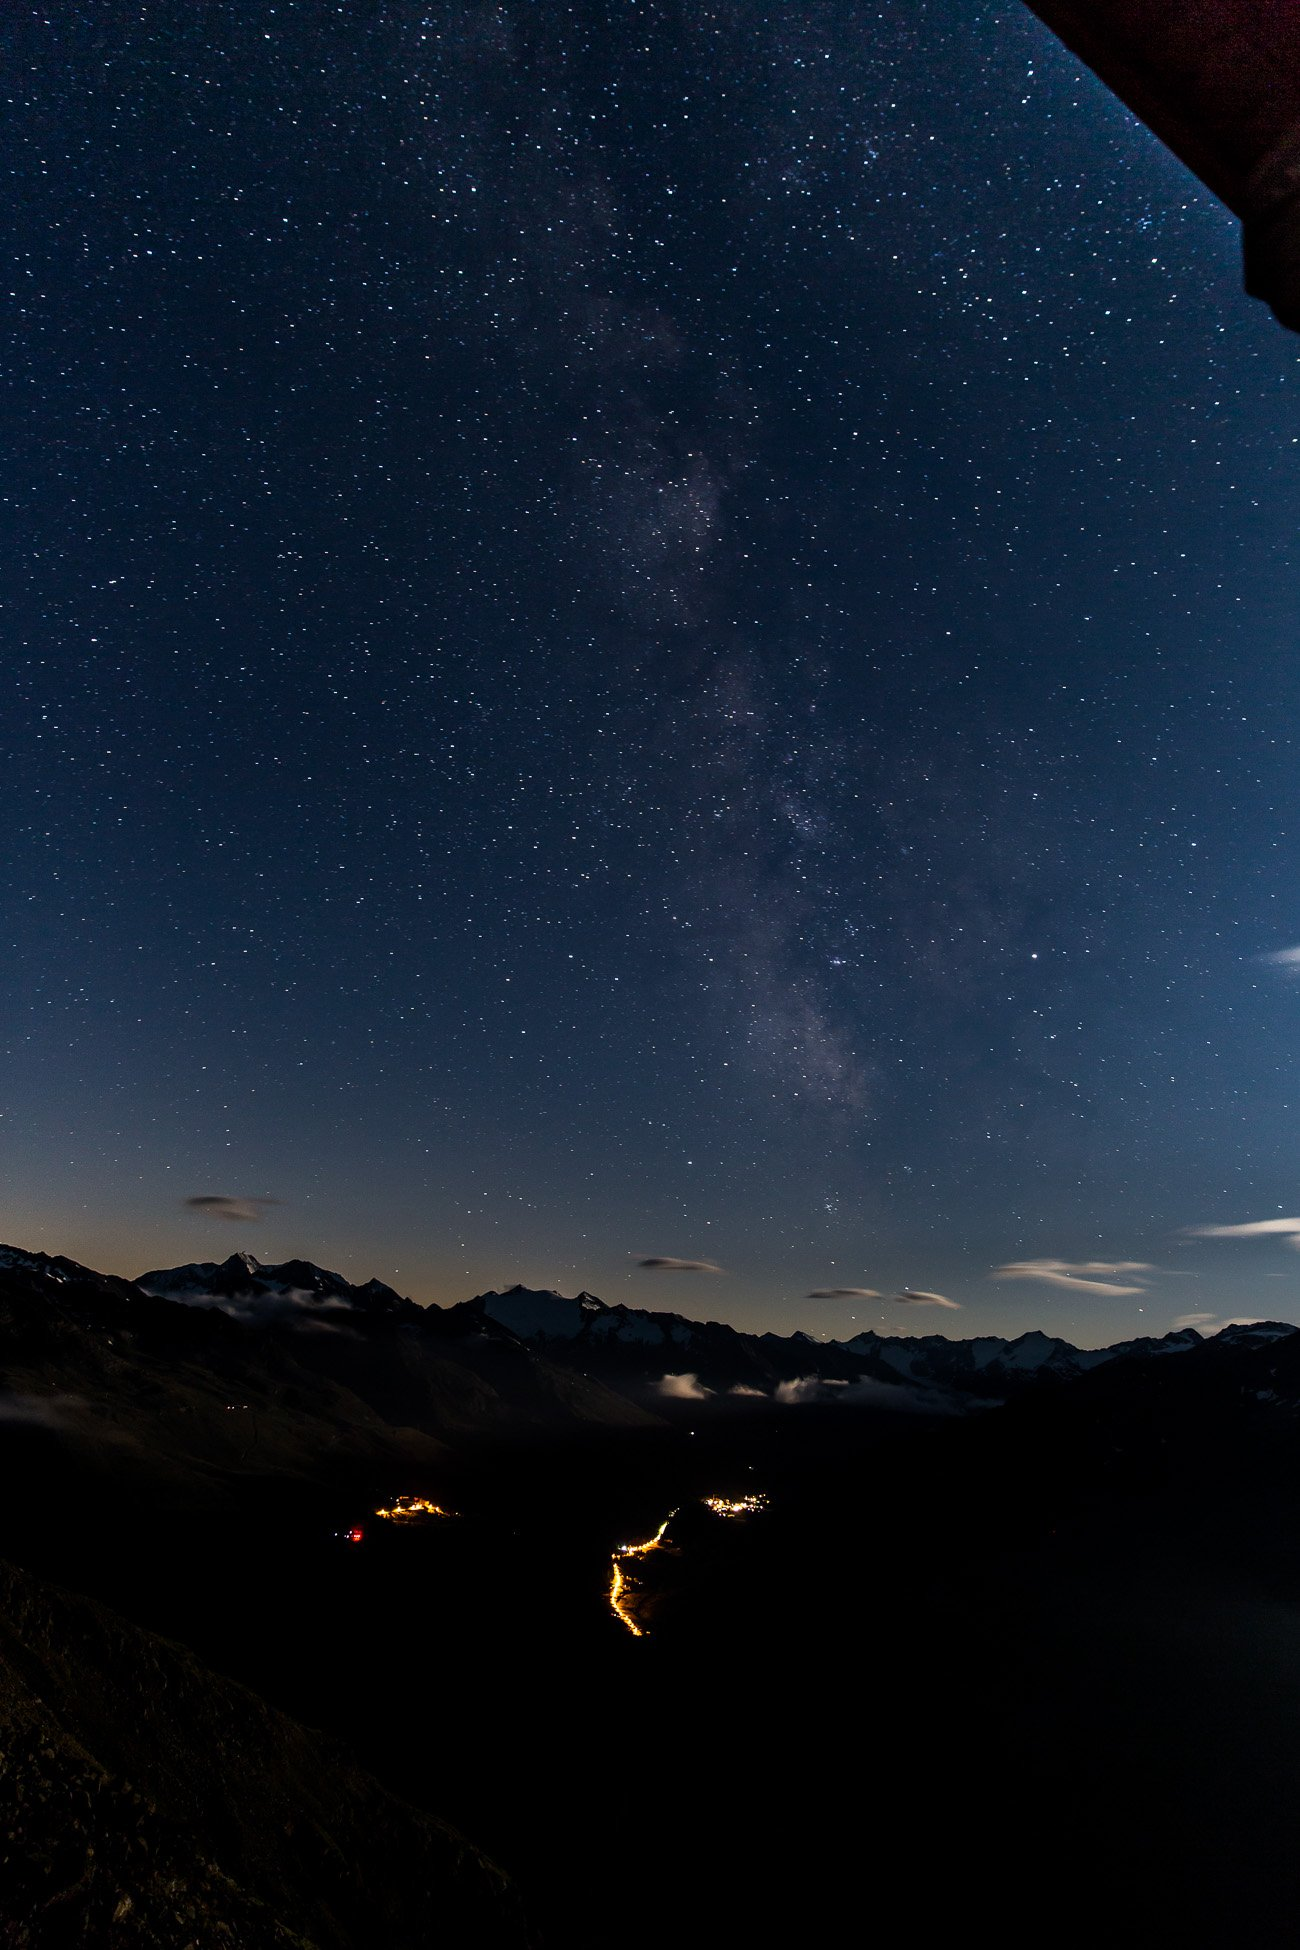 Milky Way as seen from Brunnenkogelhaus Oetztal Tyrol